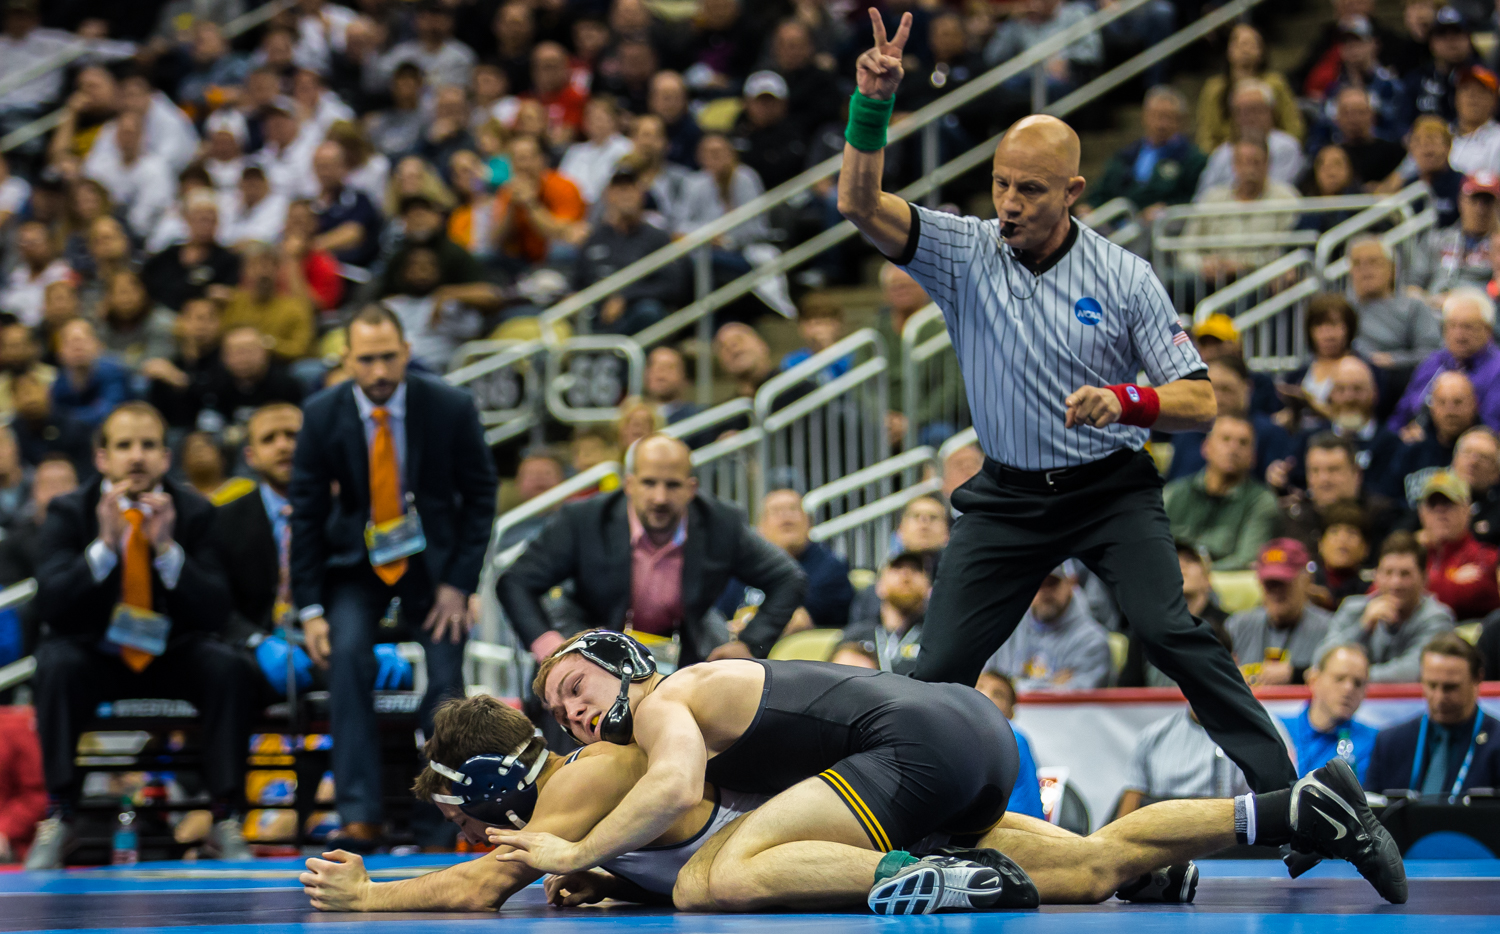 Iowa's 125-pound Spencer Lee wrestles Virginia's Jack Mueller during the final session of the 2019 NCAA D1 Wrestling Championships at PPG Paints Arena in Pittsburgh, PA on Saturday, March 23, 2019. Lee won by decision, 5-0, and defended his national title.